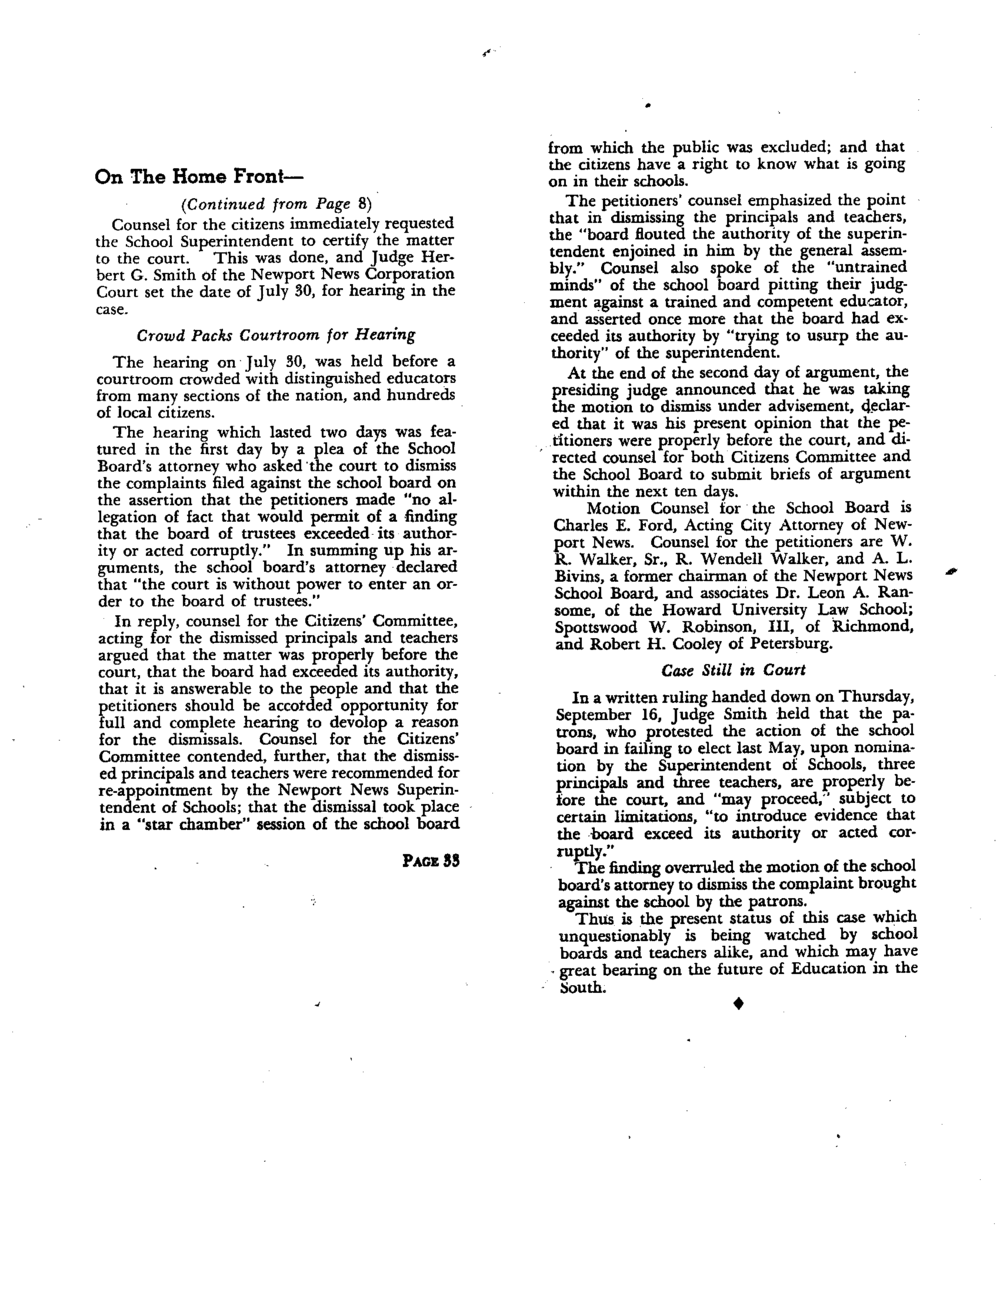 Zeta Lambda 1943 - The Newport News Case 4.png